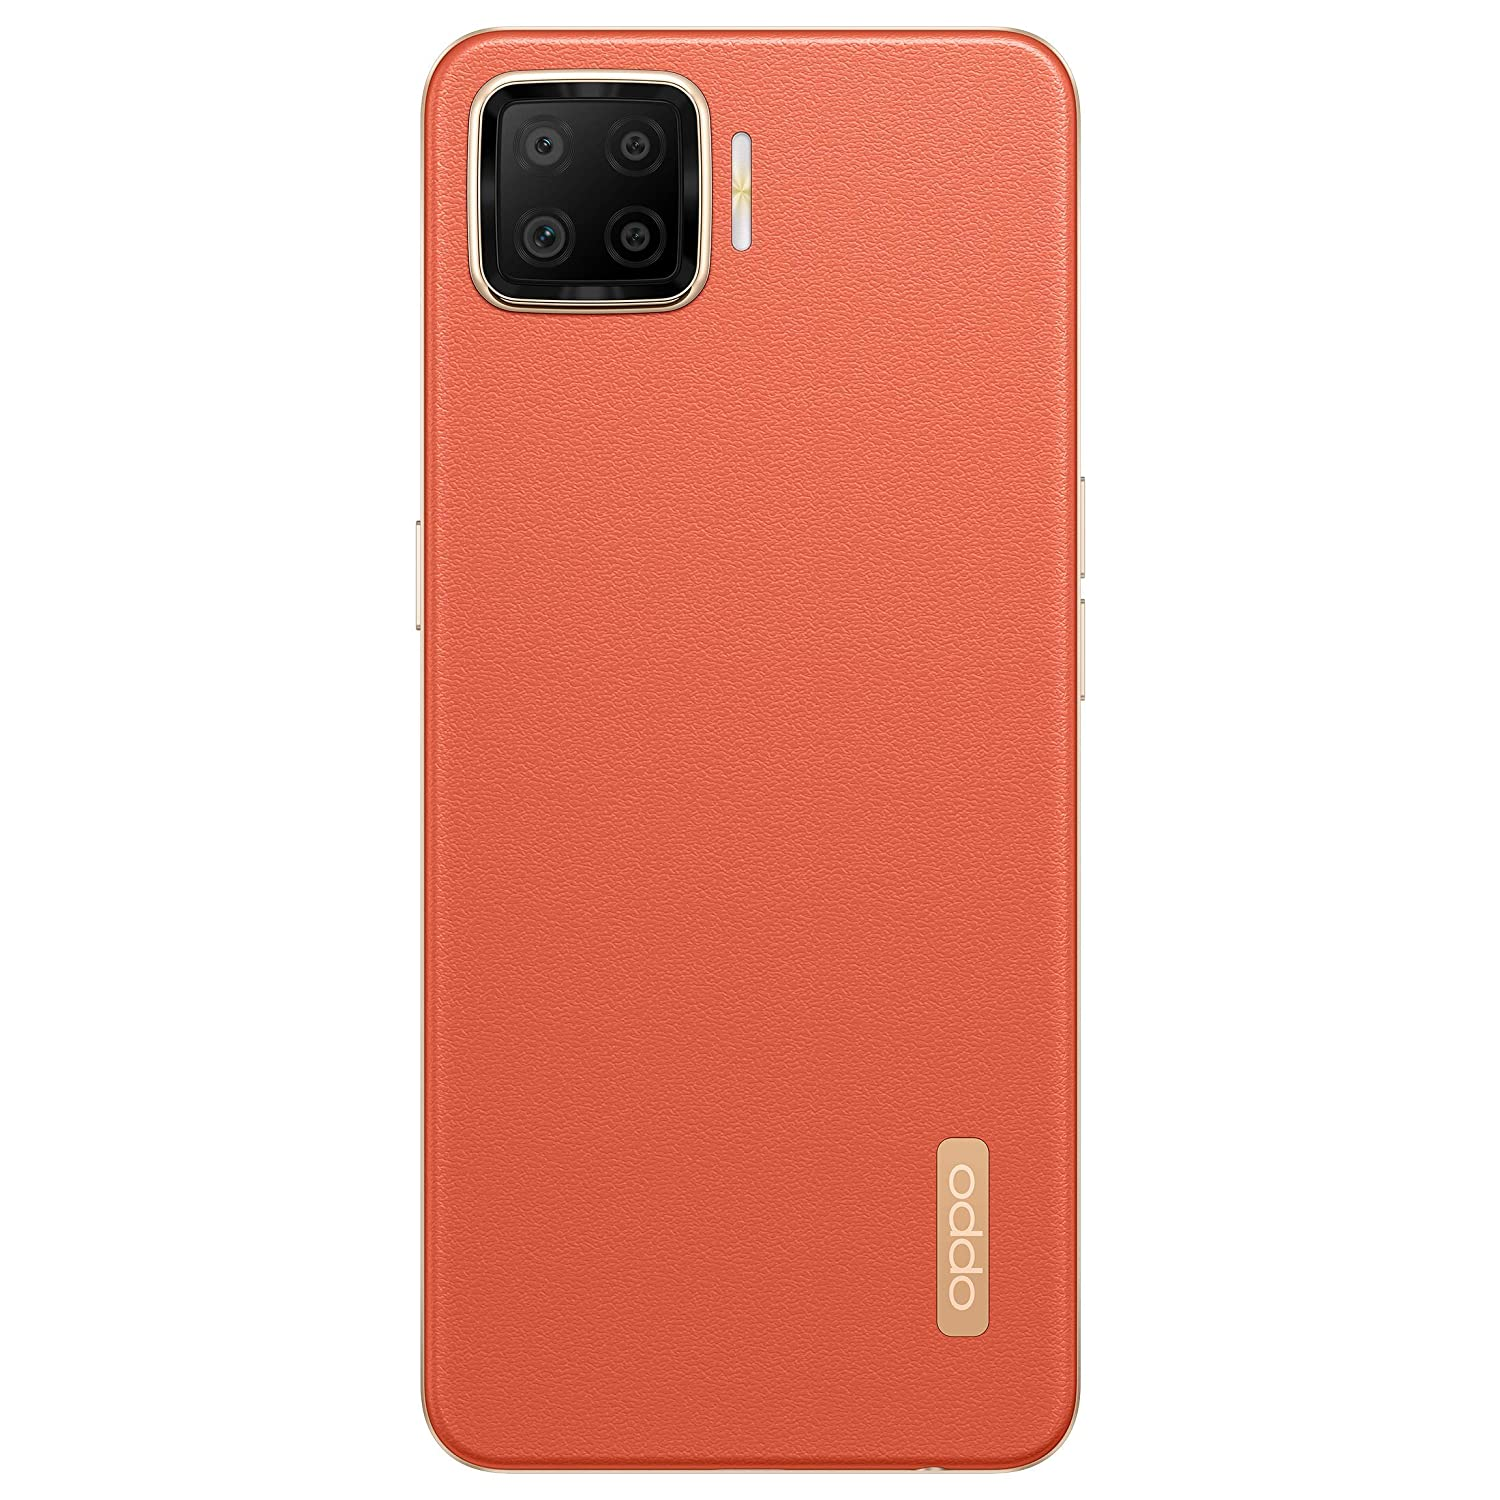 OPPO F17 Dynamic Orange 6GB|128GB